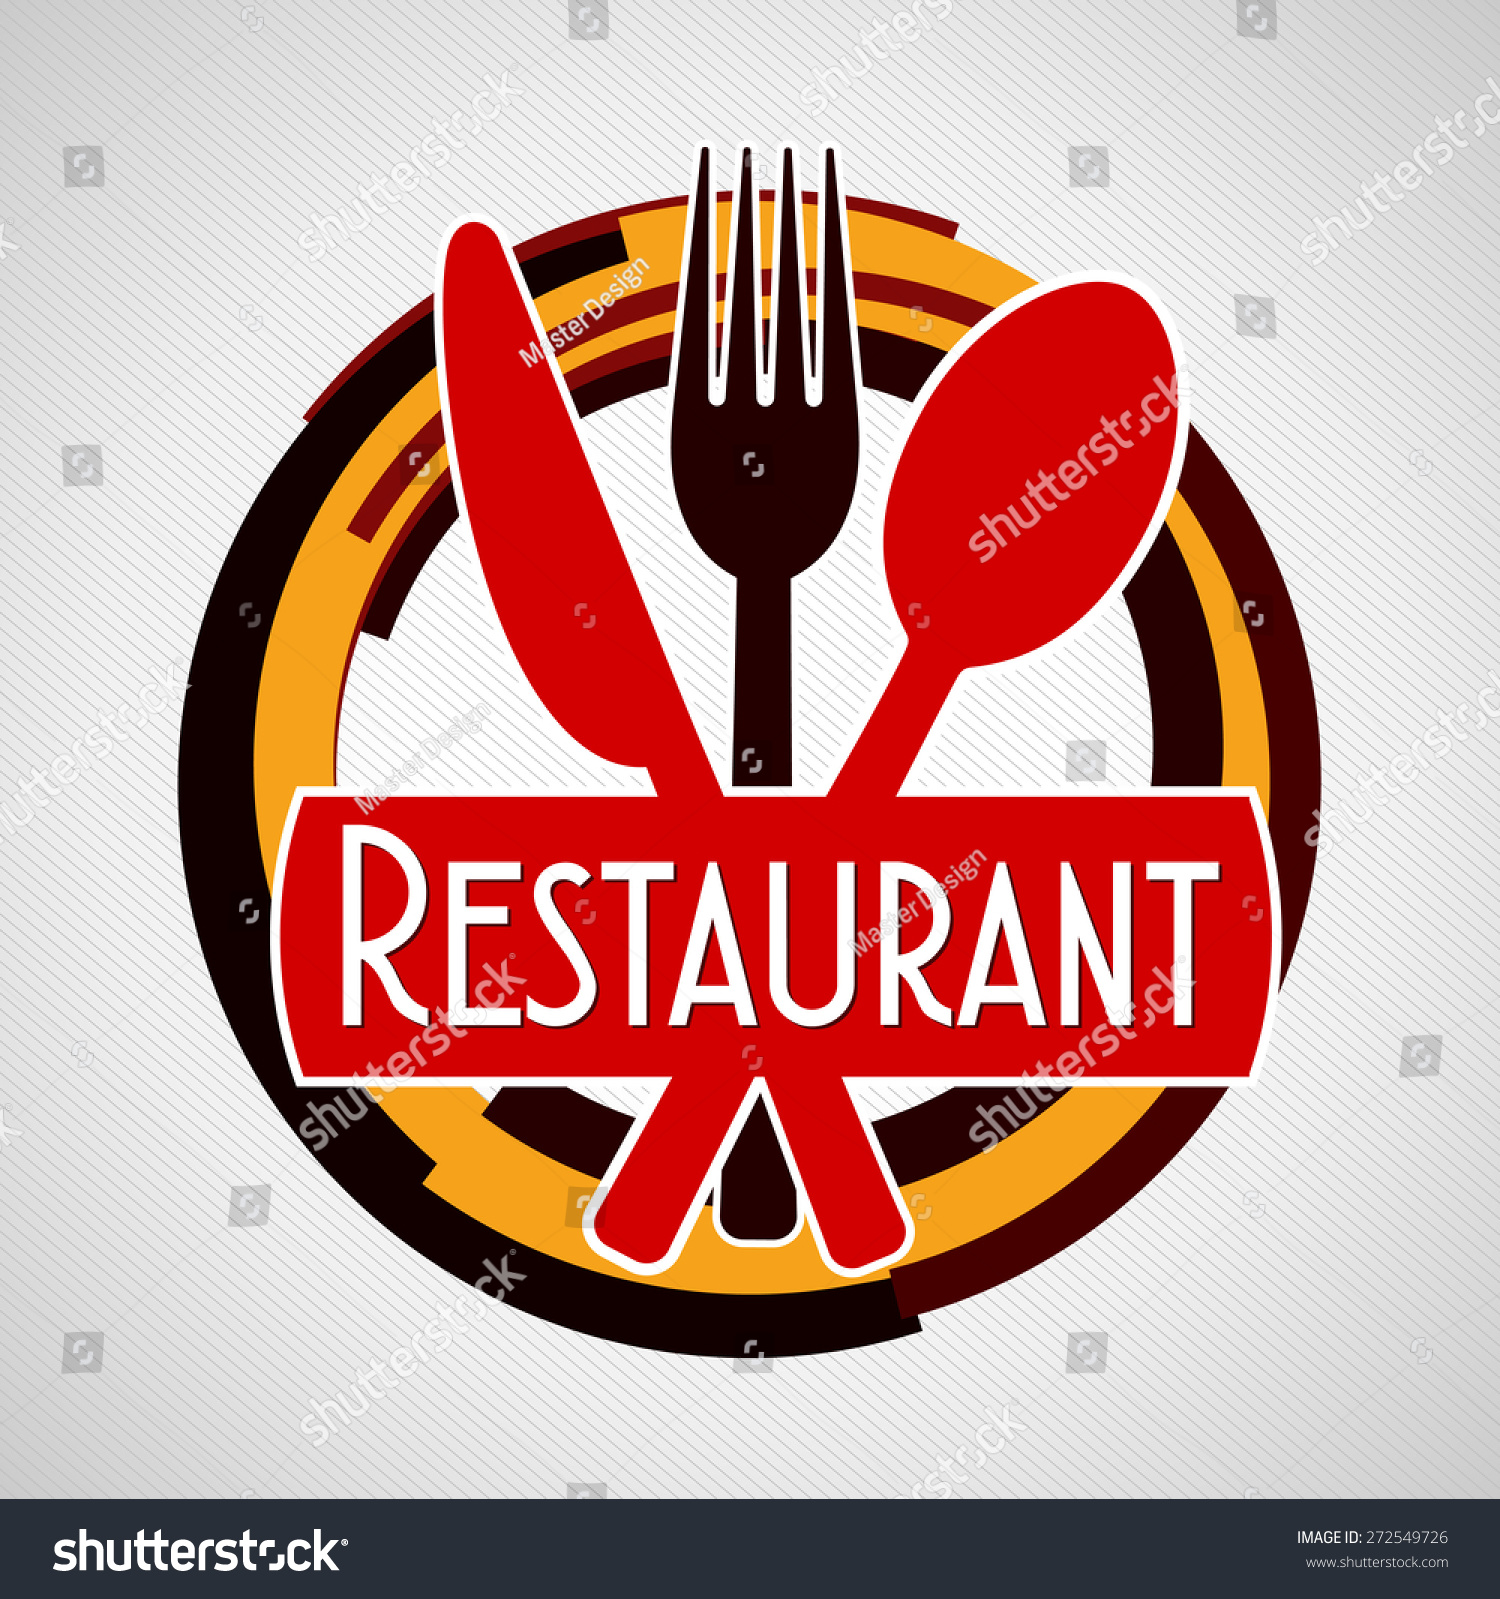 Restaurant logo creative stock vector 272549726 shutterstock restaurant logo creative buycottarizona Image collections